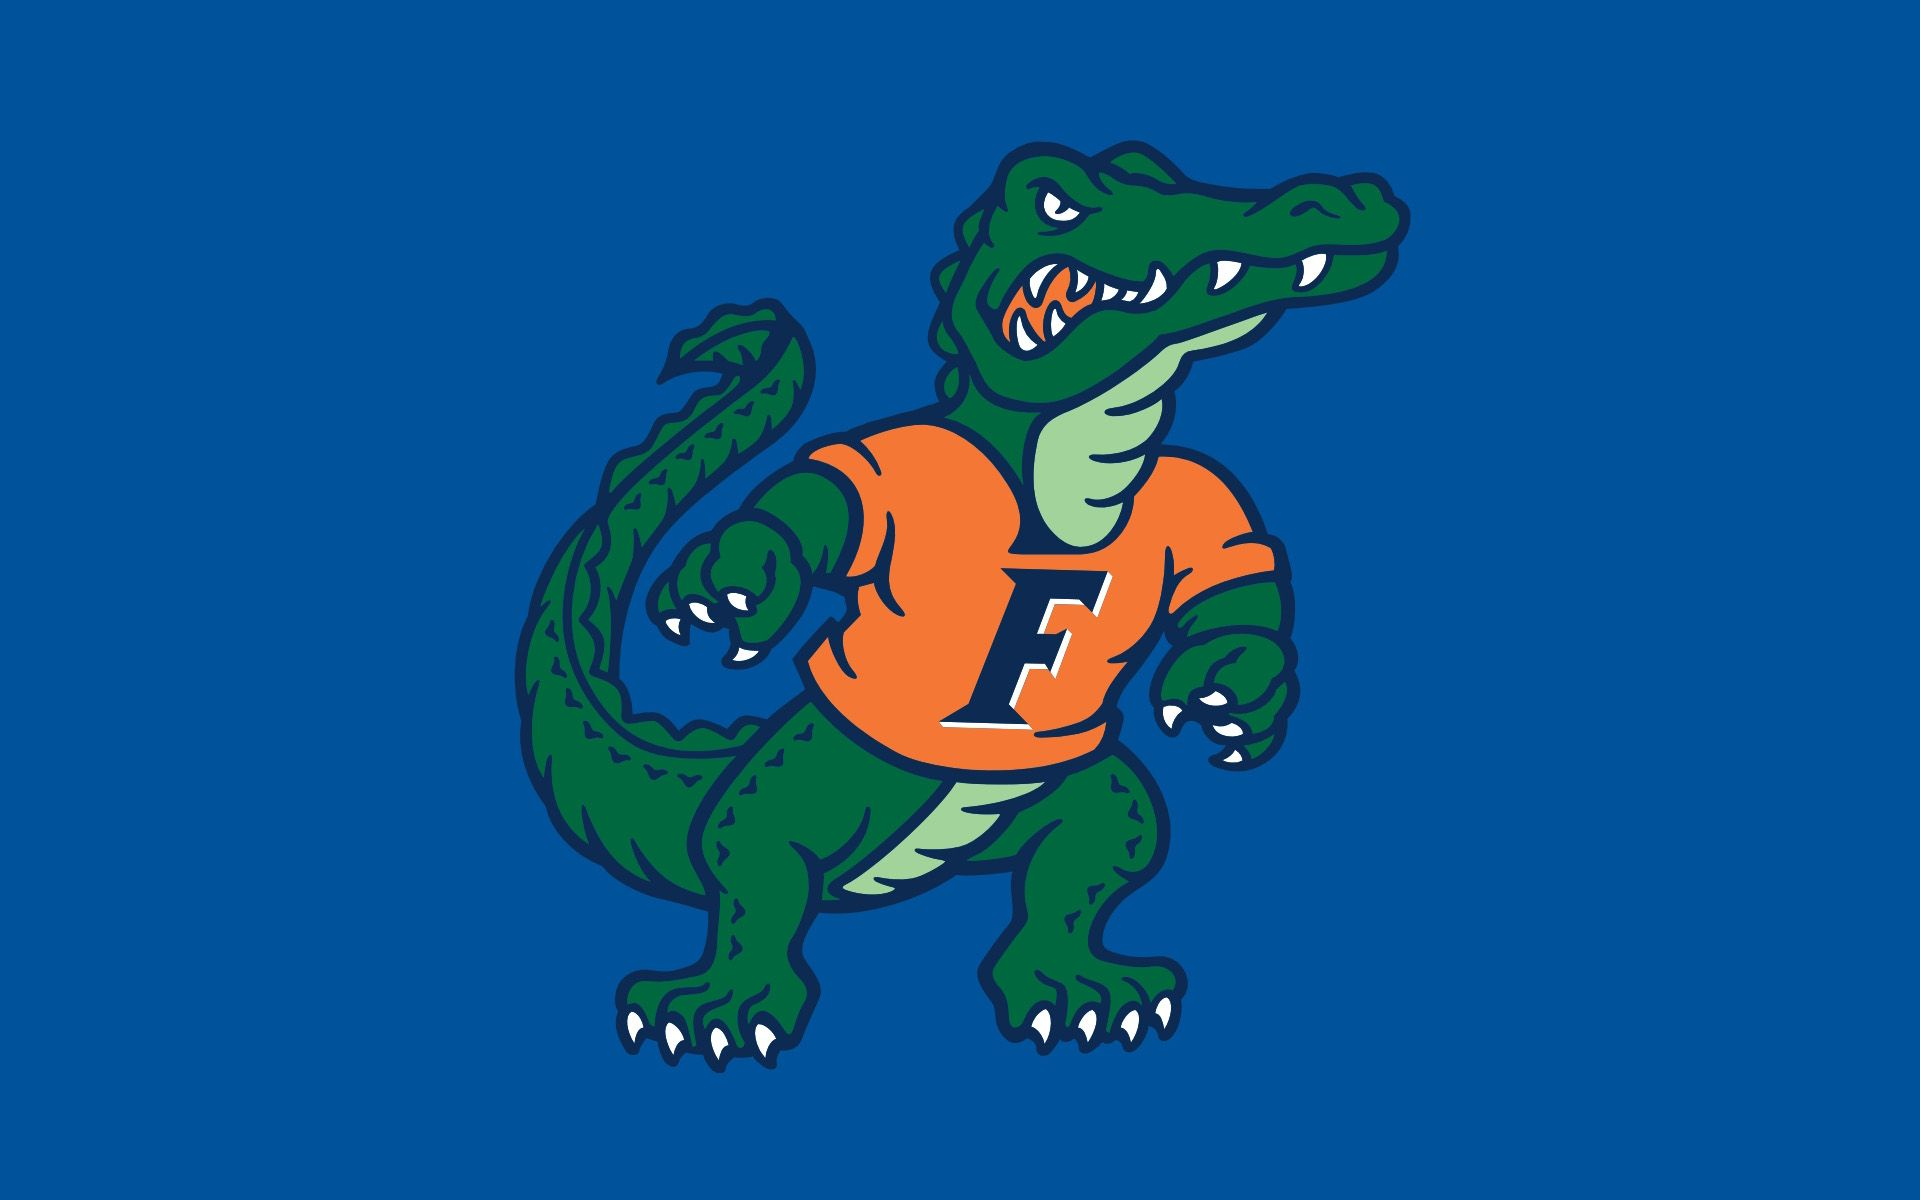 College Basketball Wallpaper For March Madness Ncaa Themes Florida Gators Wallpaper Florida Gators Florida Gators Football